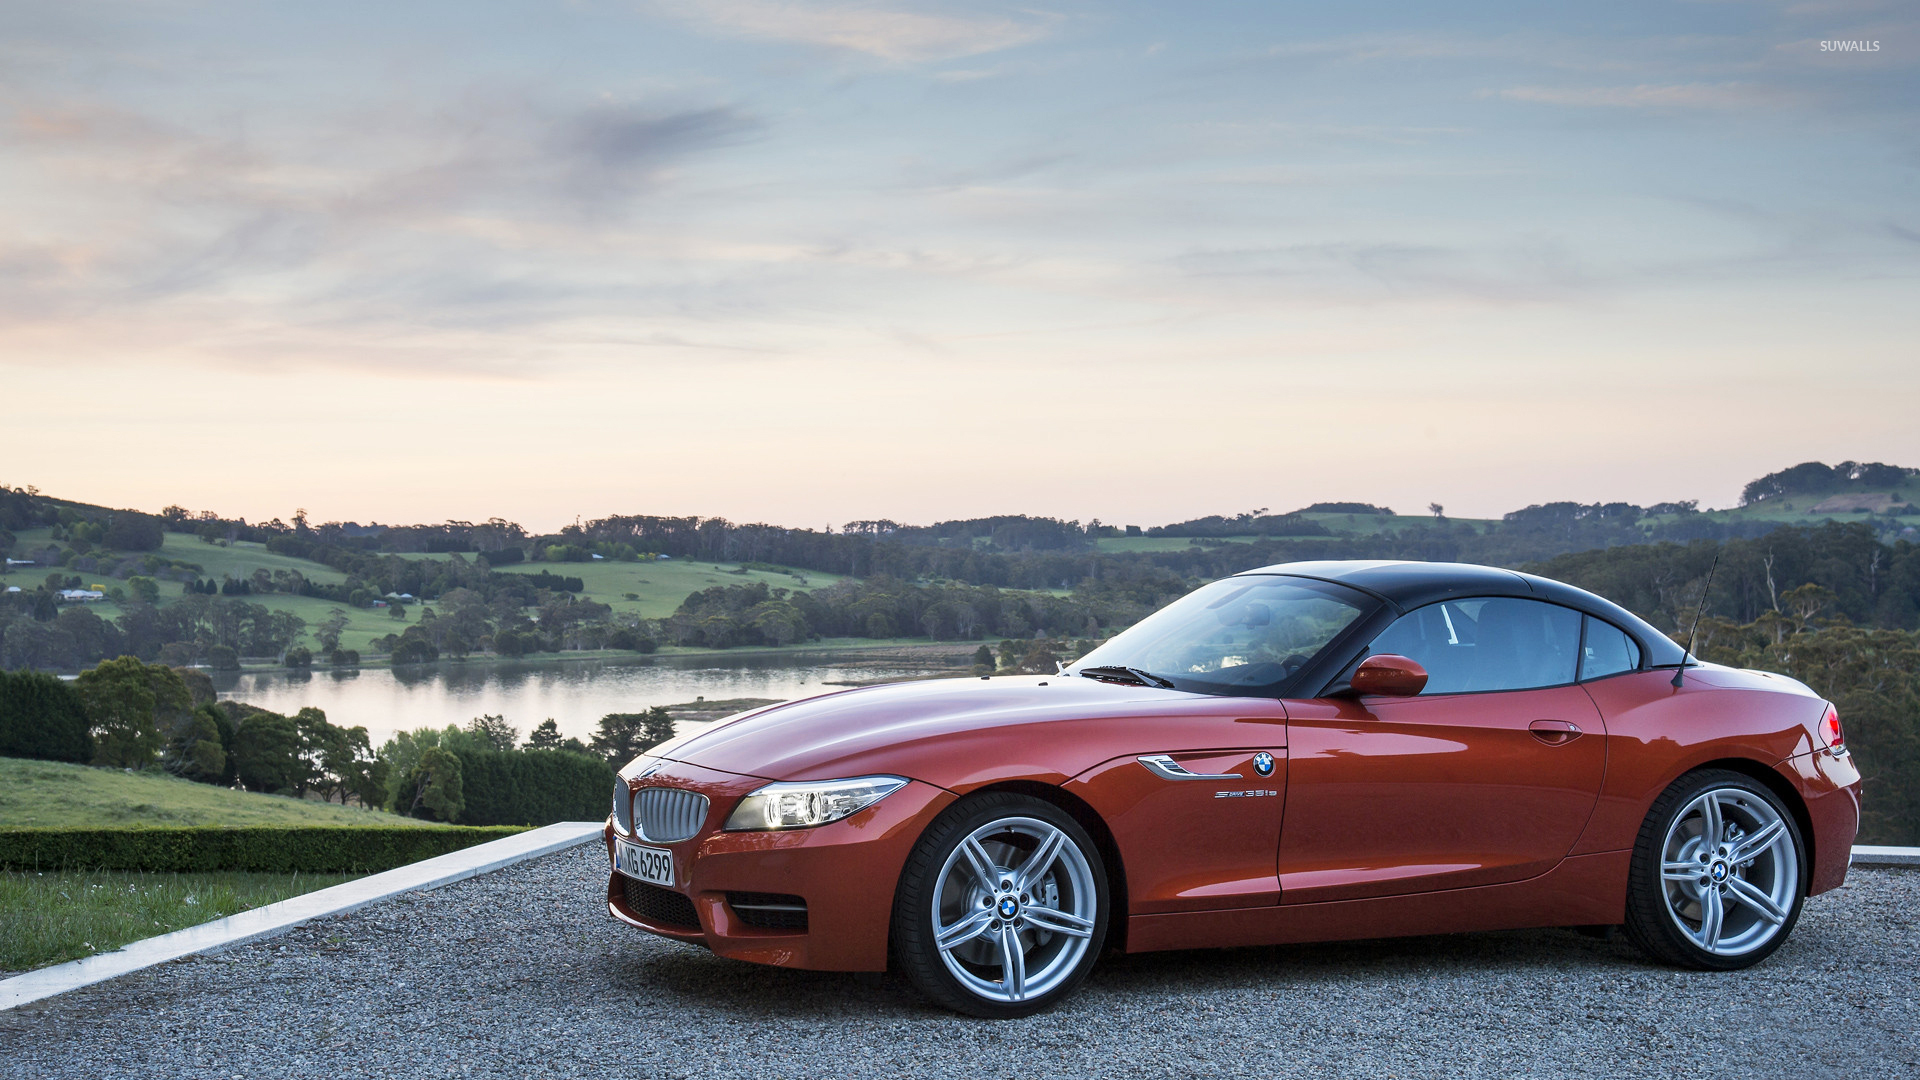 2014 Bmw Z4 Side View Wallpaper Car Wallpapers 51693